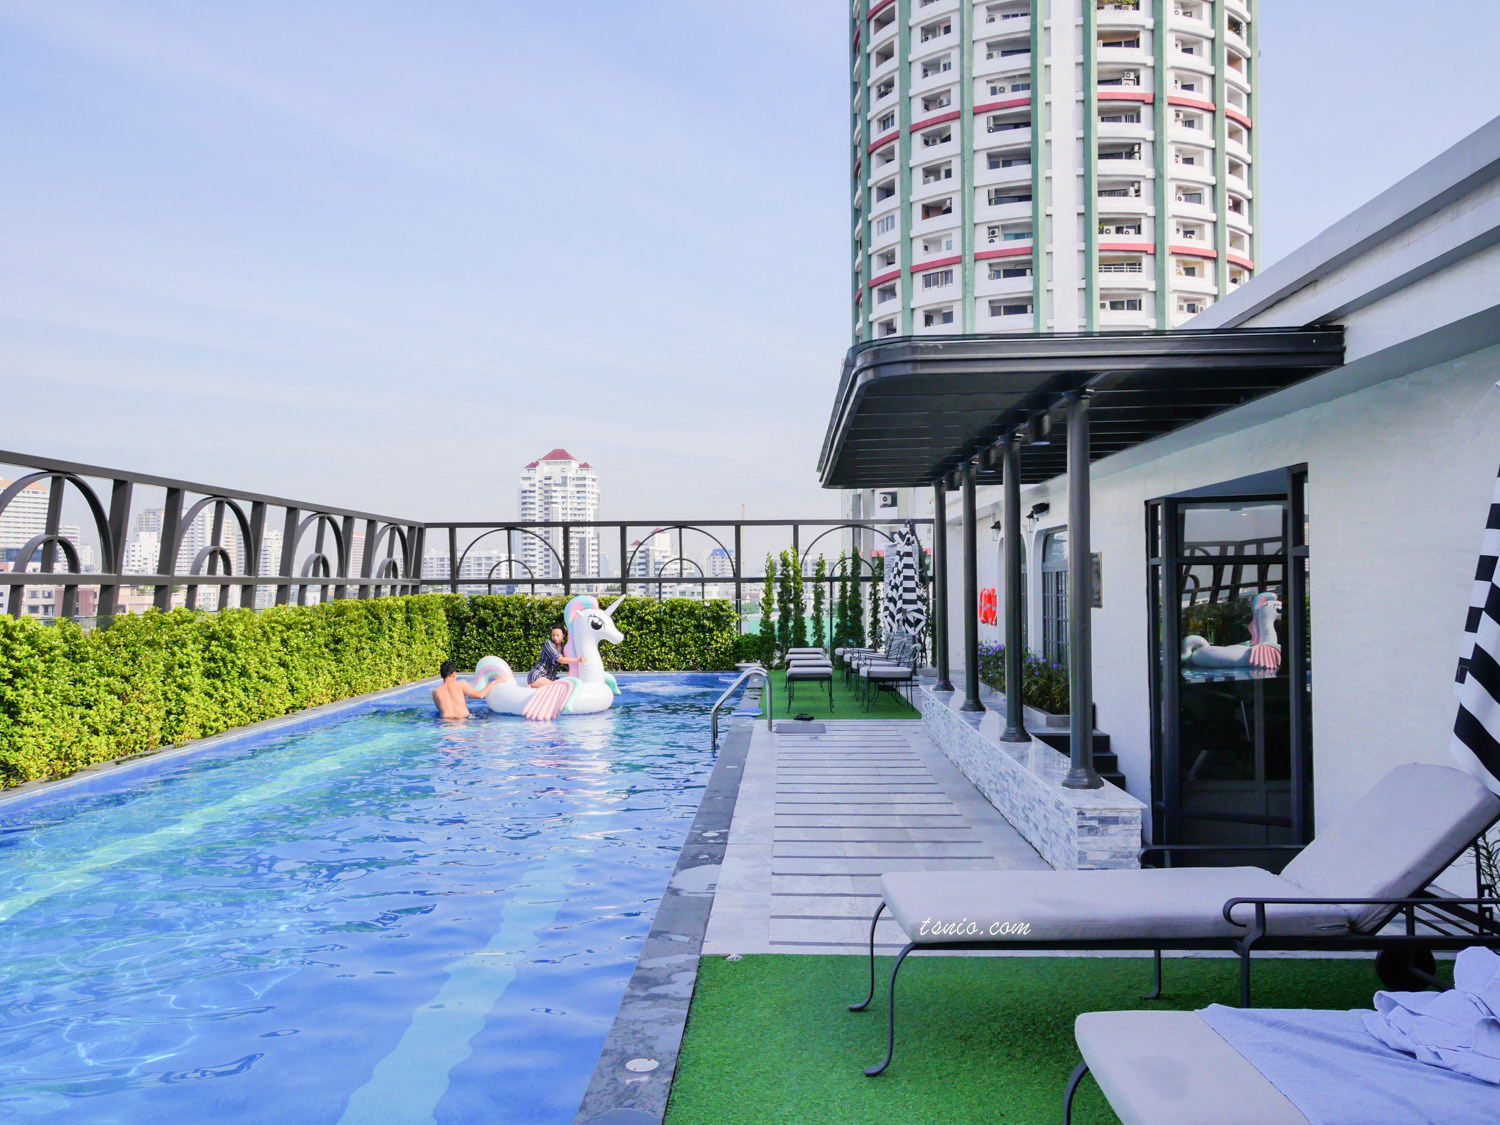 曼谷飯店推薦 The Salil Hotel Sukhumvit 57 Thonglor夢幻優雅設計酒店